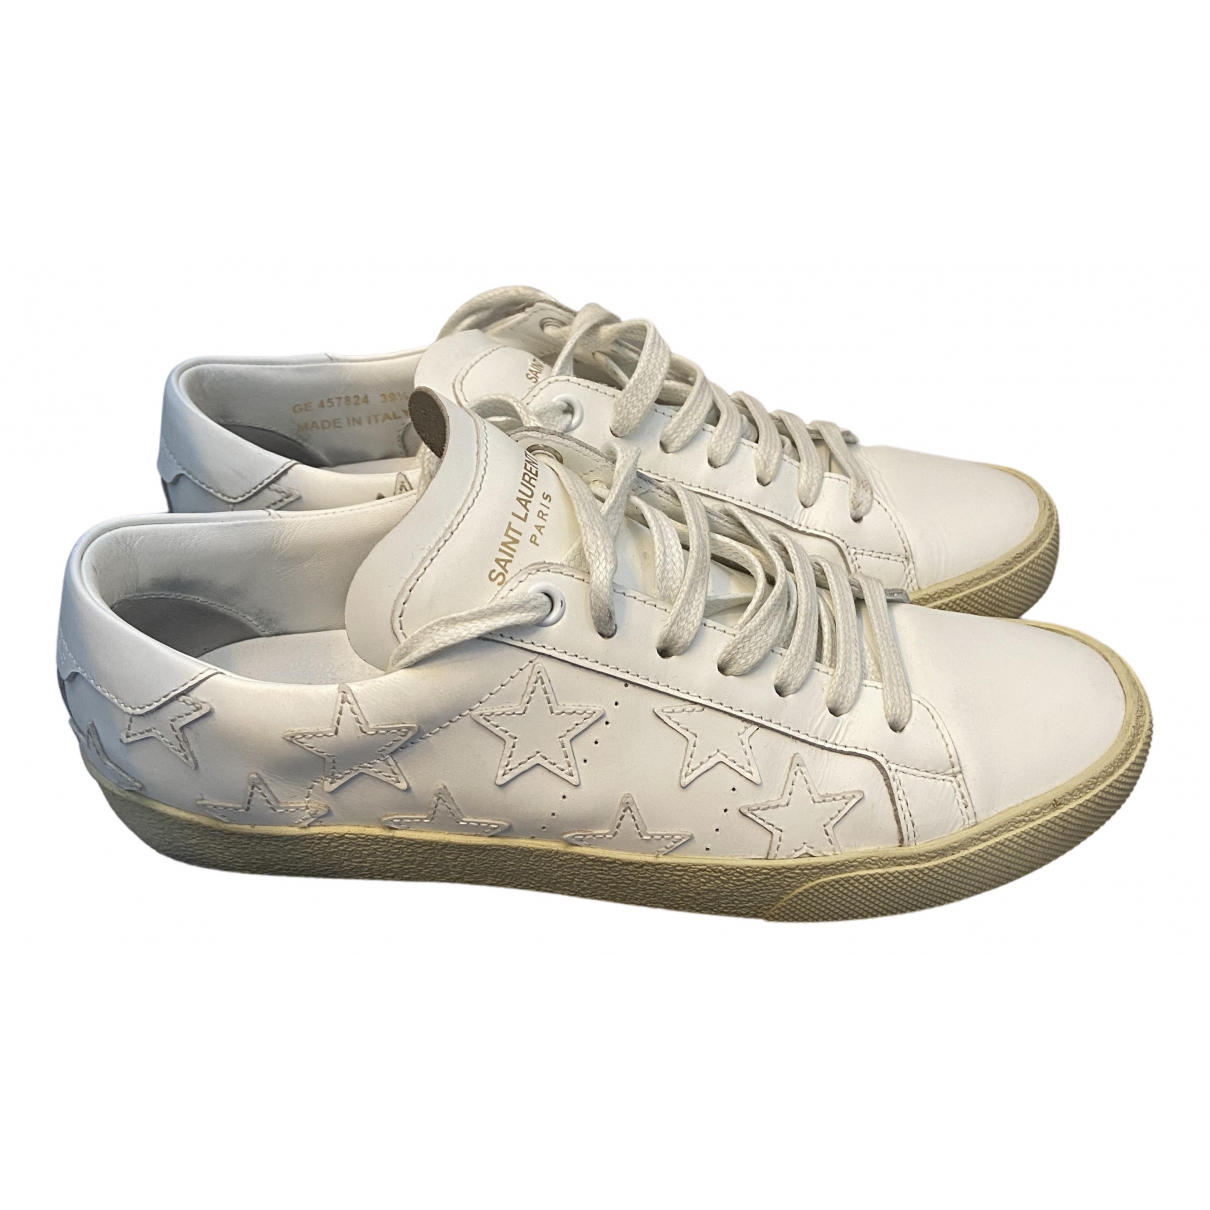 Saint Laurent N White Leather Trainers for Women 39.5 EU